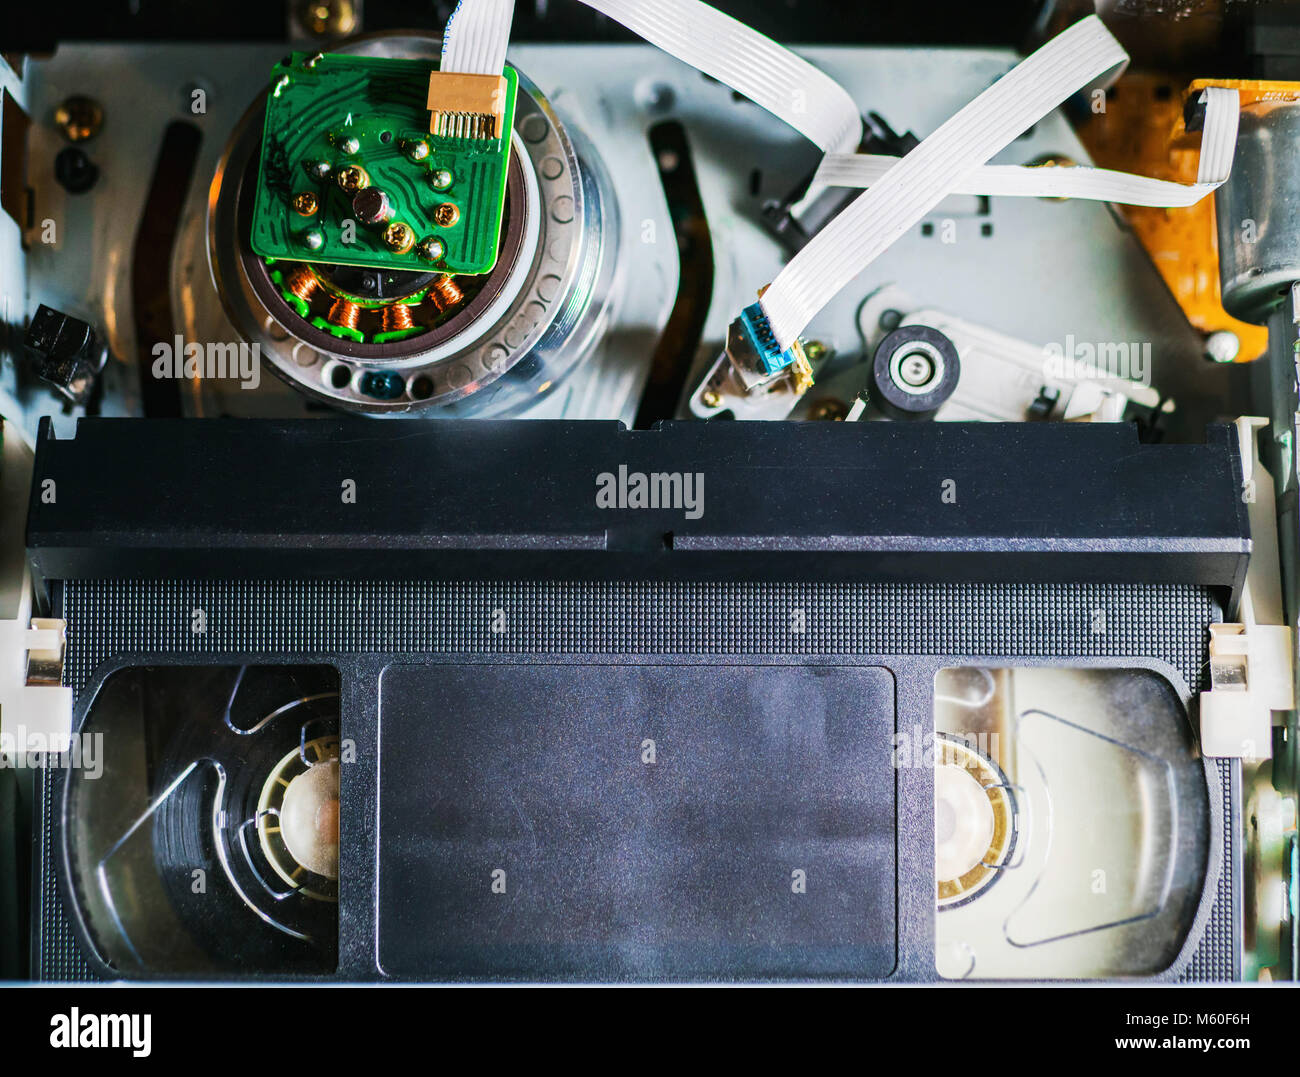 VHS tape inside a VCR player, reels moving while reading the contents. Close-up detail shot. Stock Photo